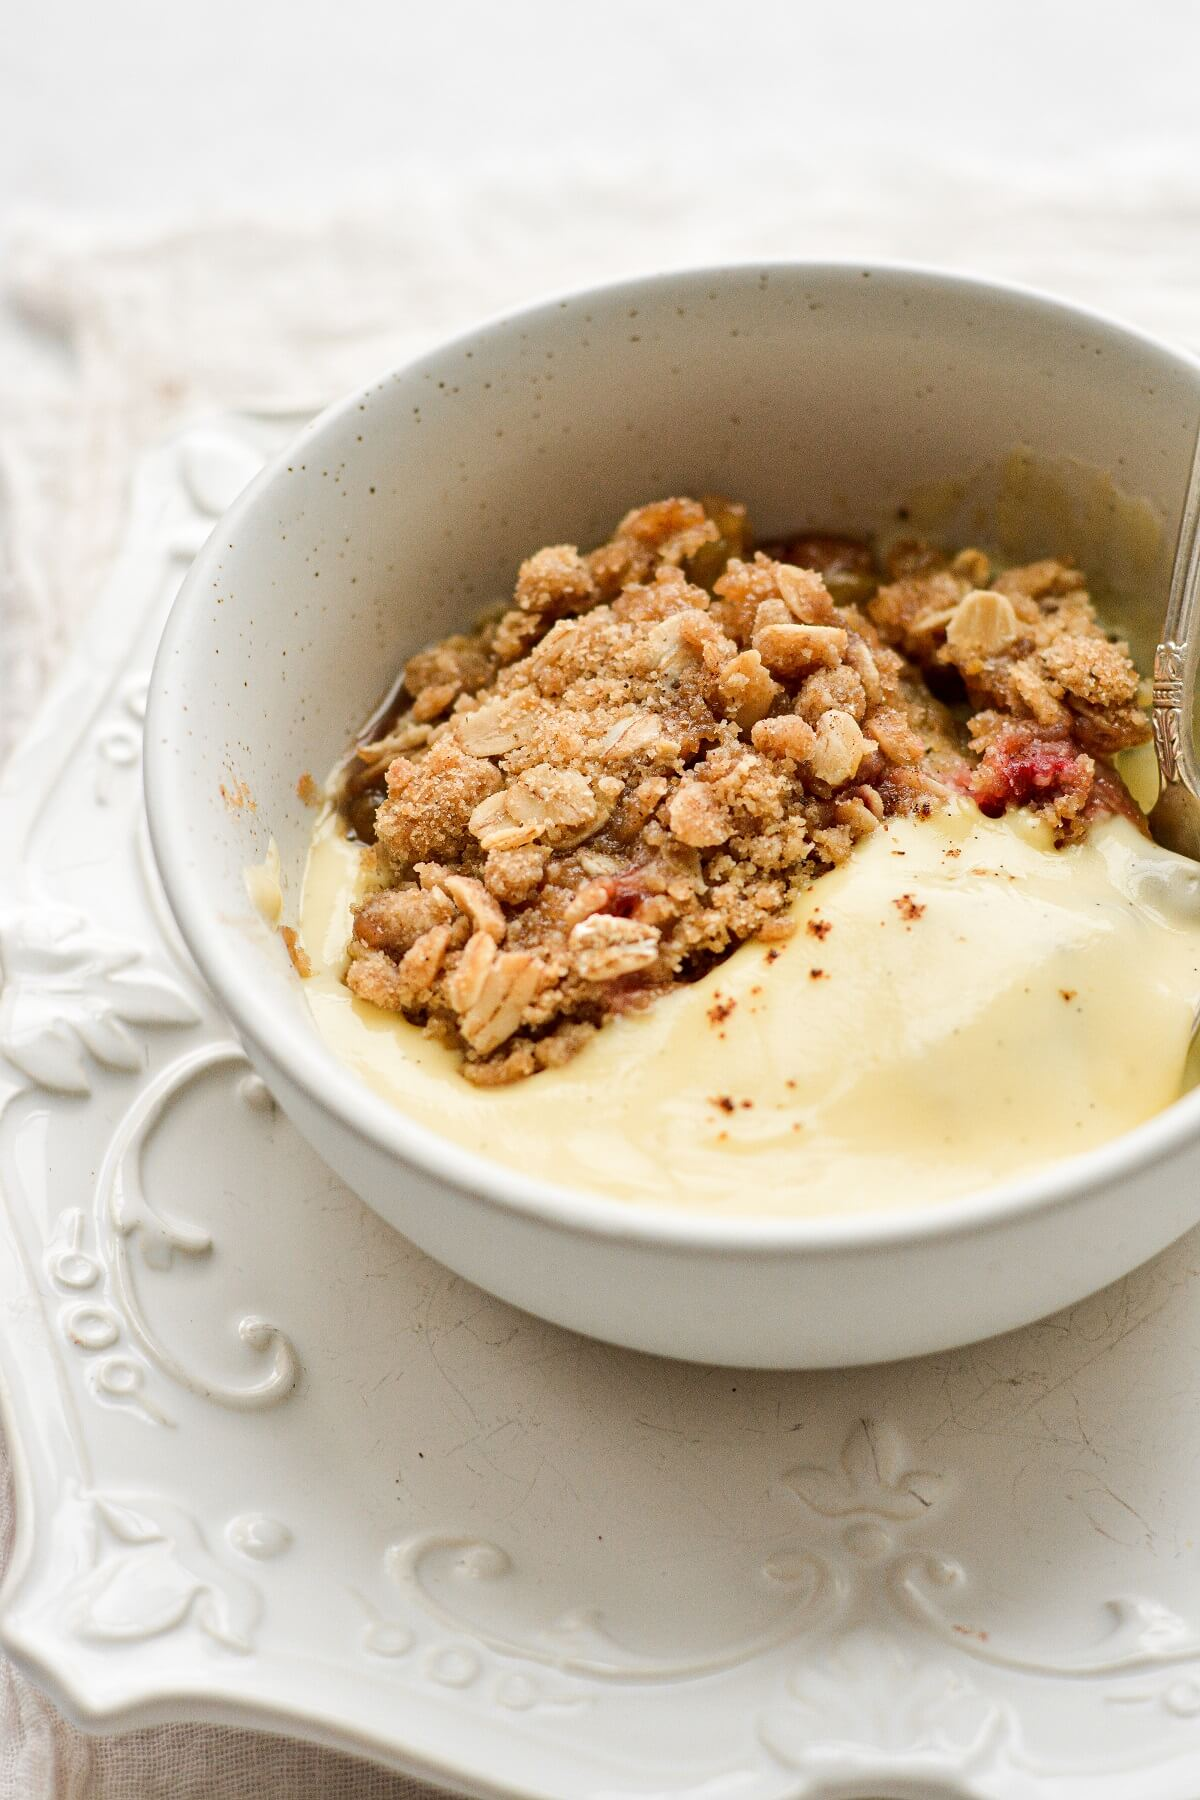 A bowl of rhubarb crumble, served with vanilla bean custard.